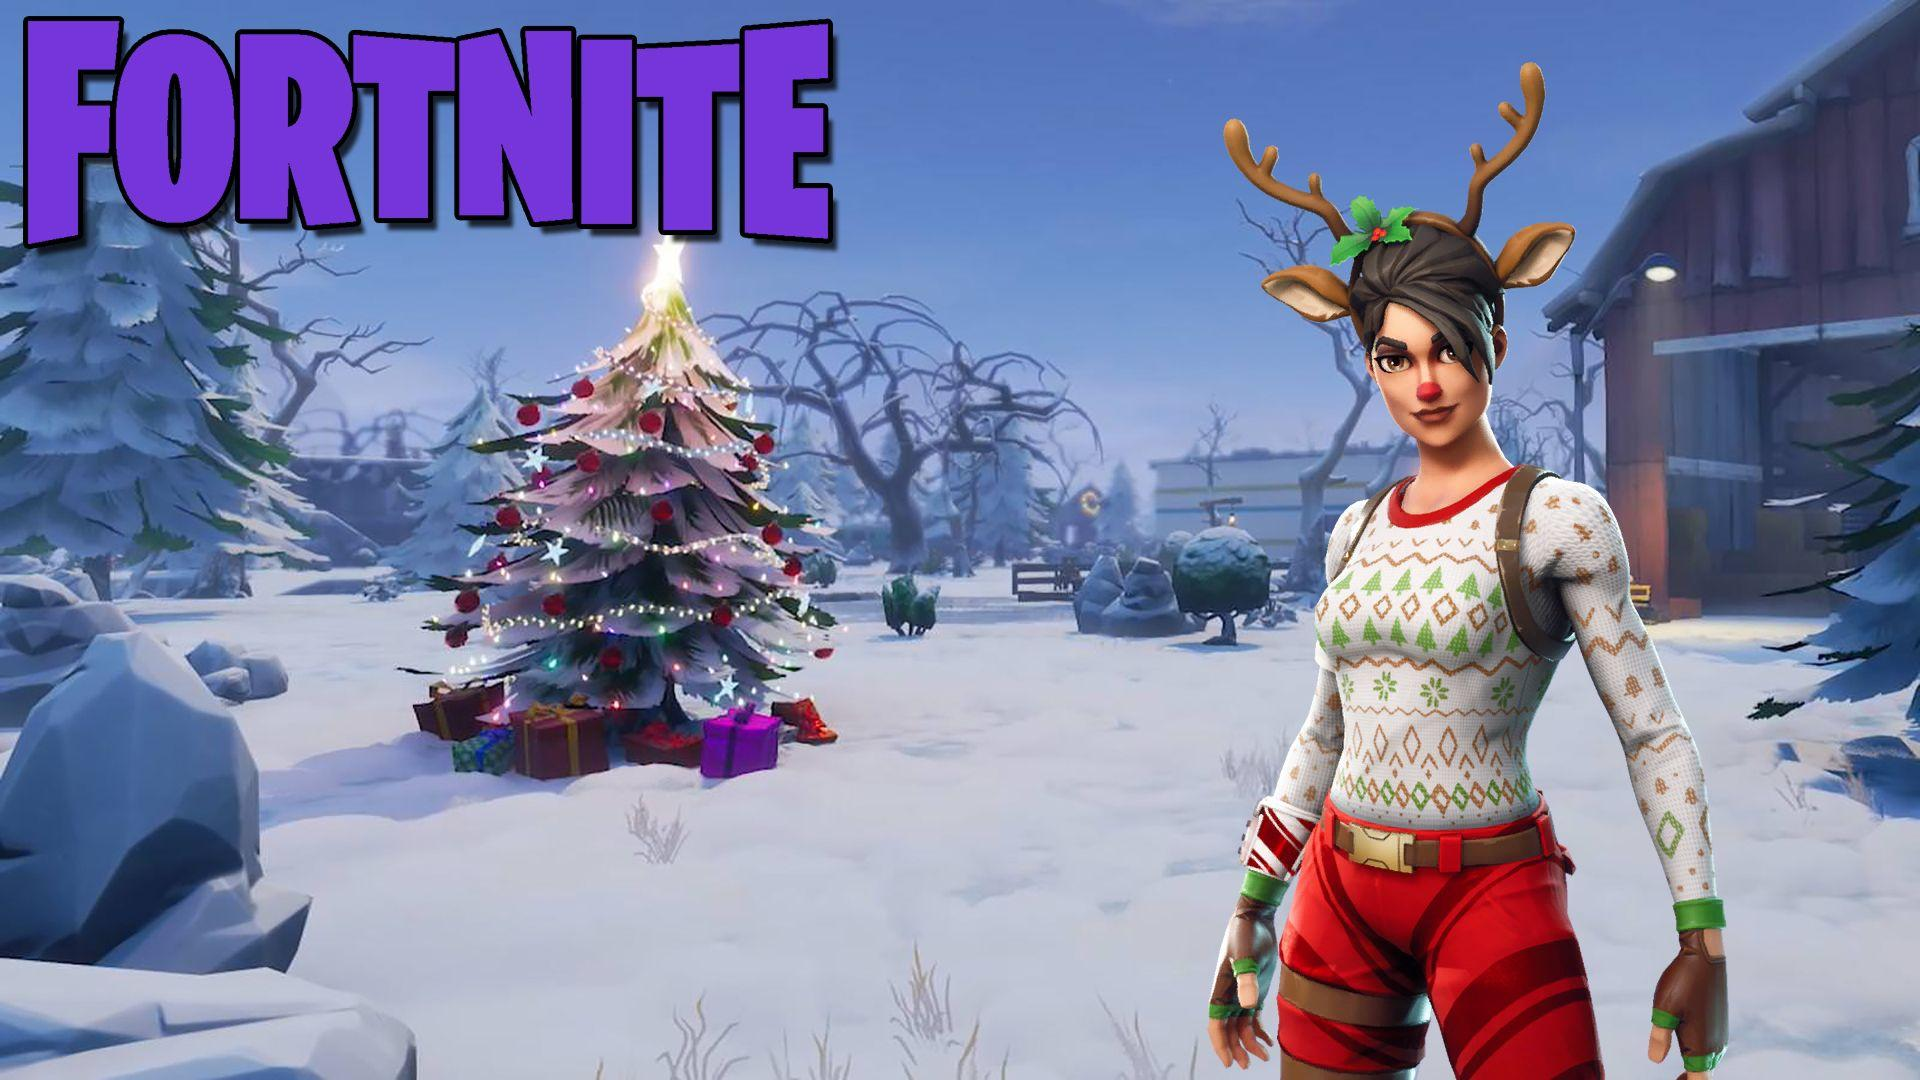 Red Nosed Raider Fortnite Outfit Skin How to Get + News